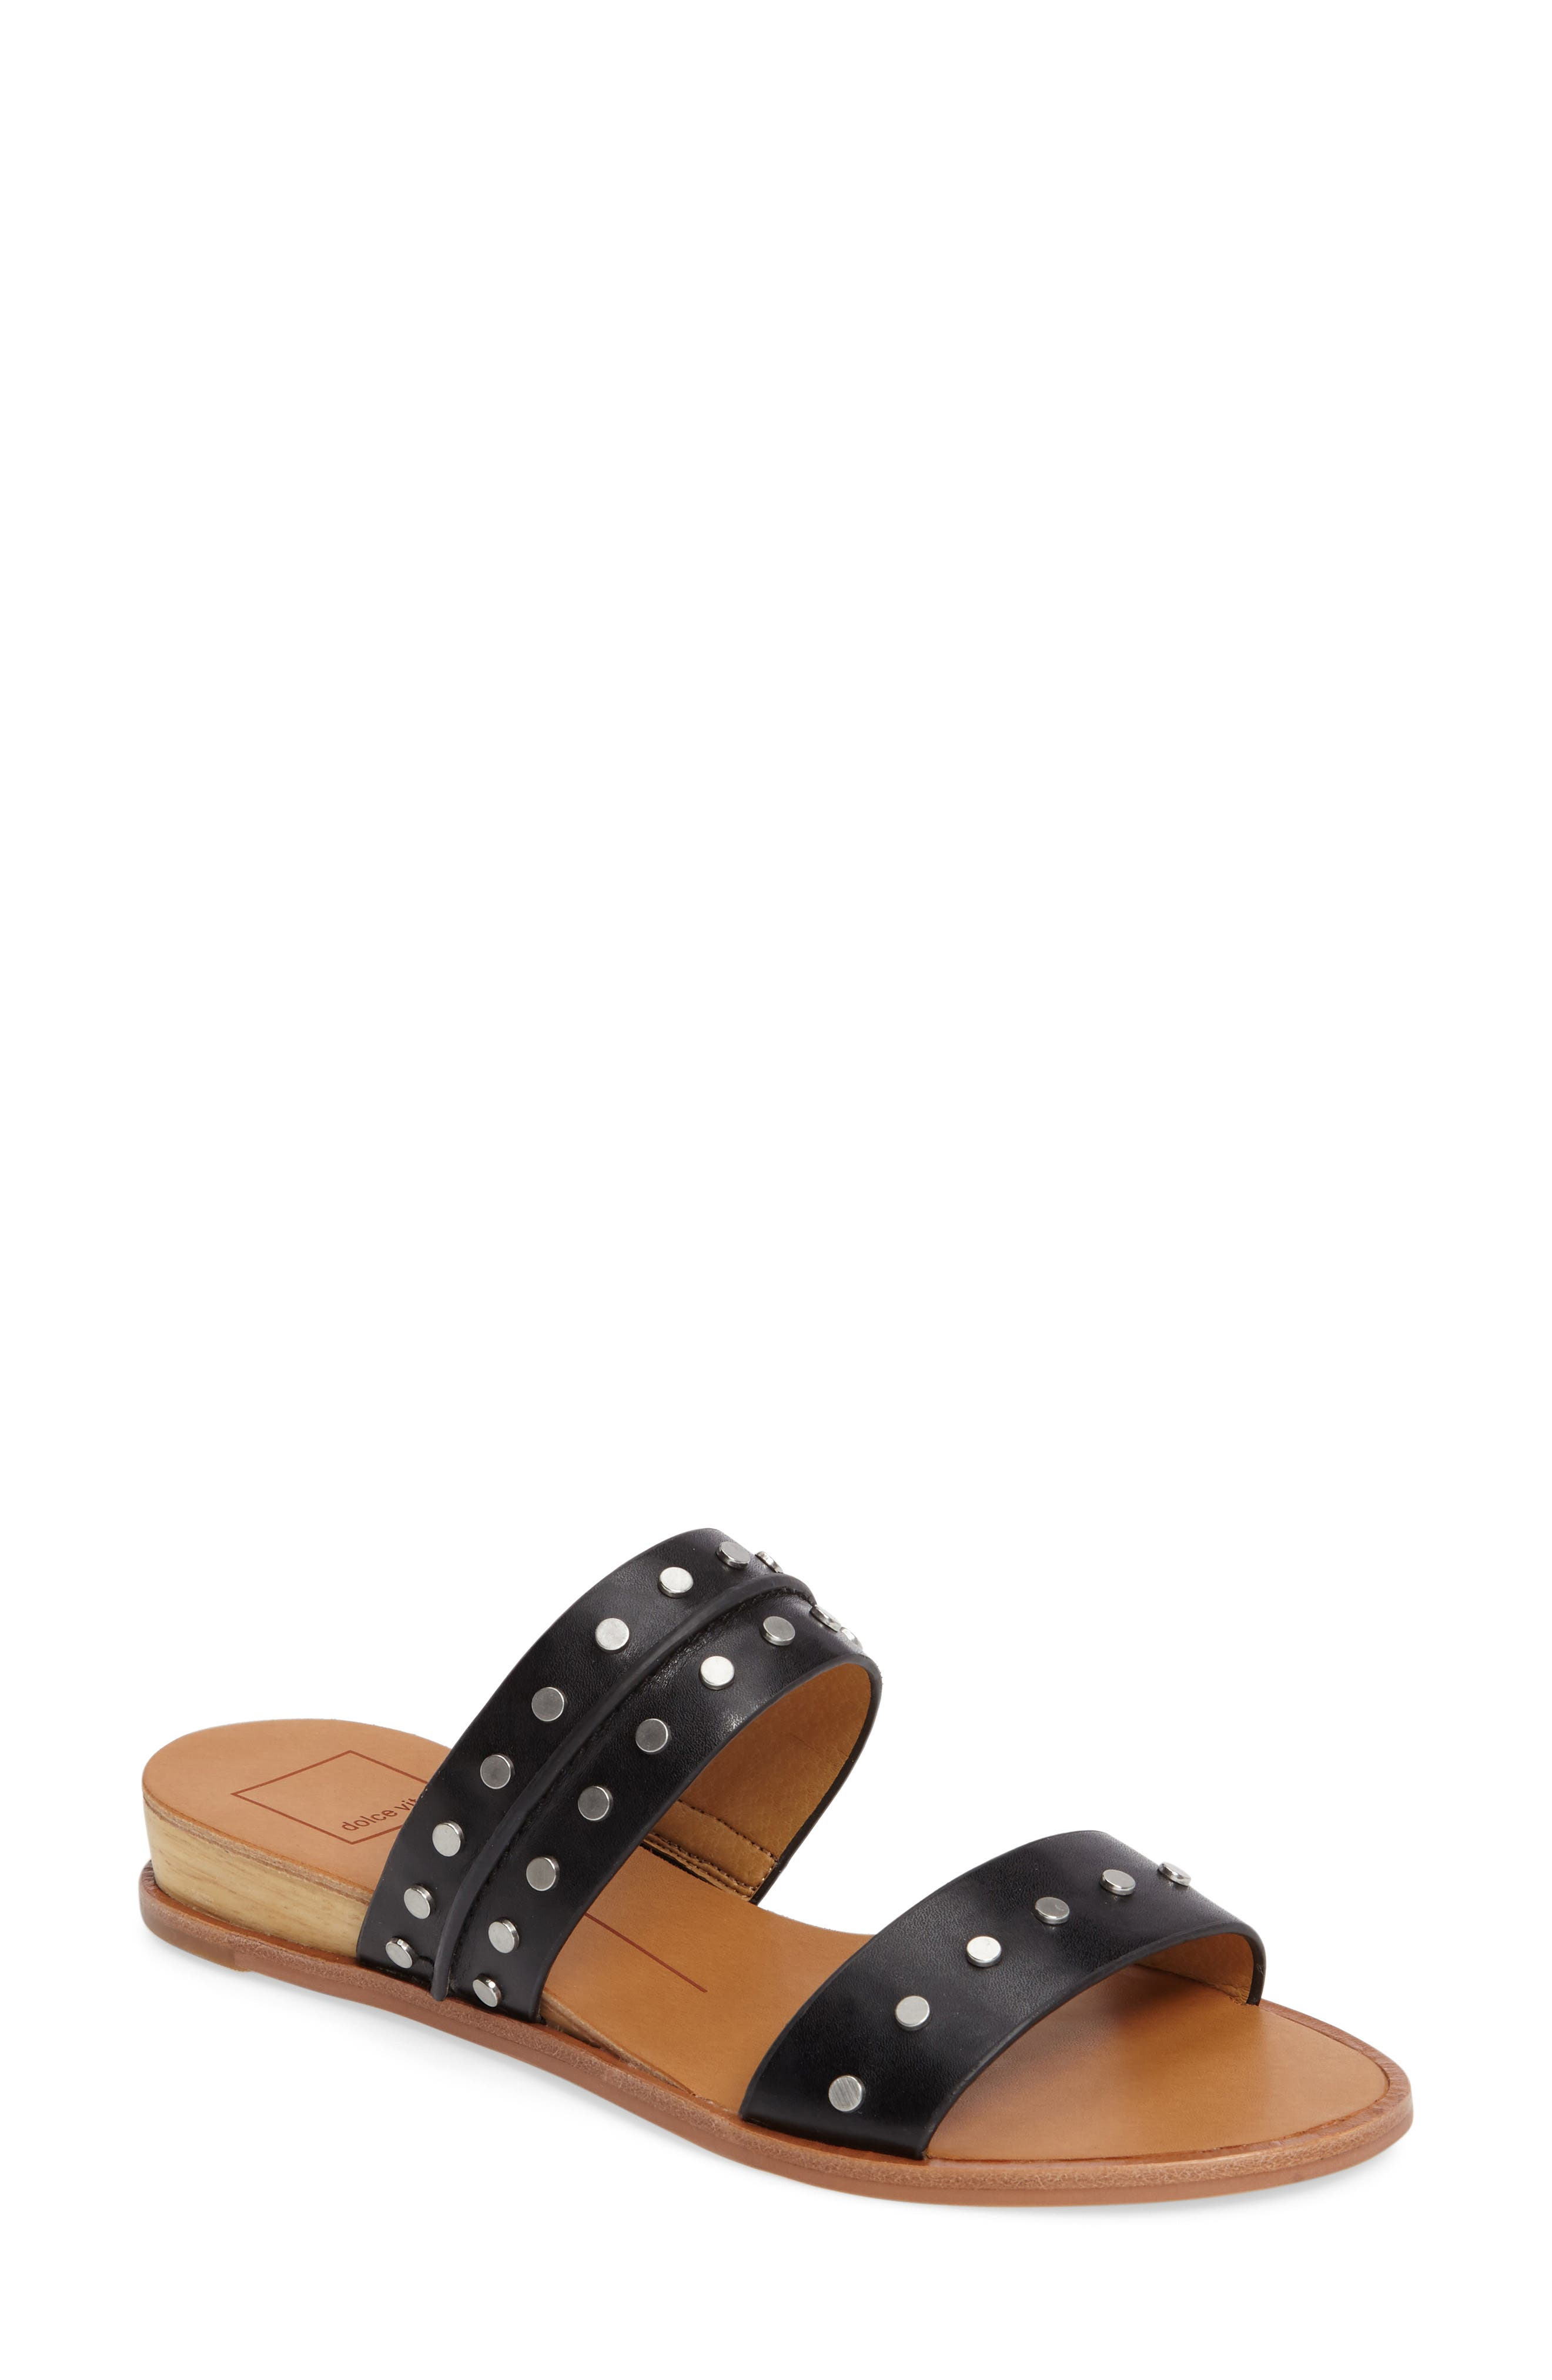 Pacey Studded Wedge Sandal,                             Main thumbnail 1, color,                             001